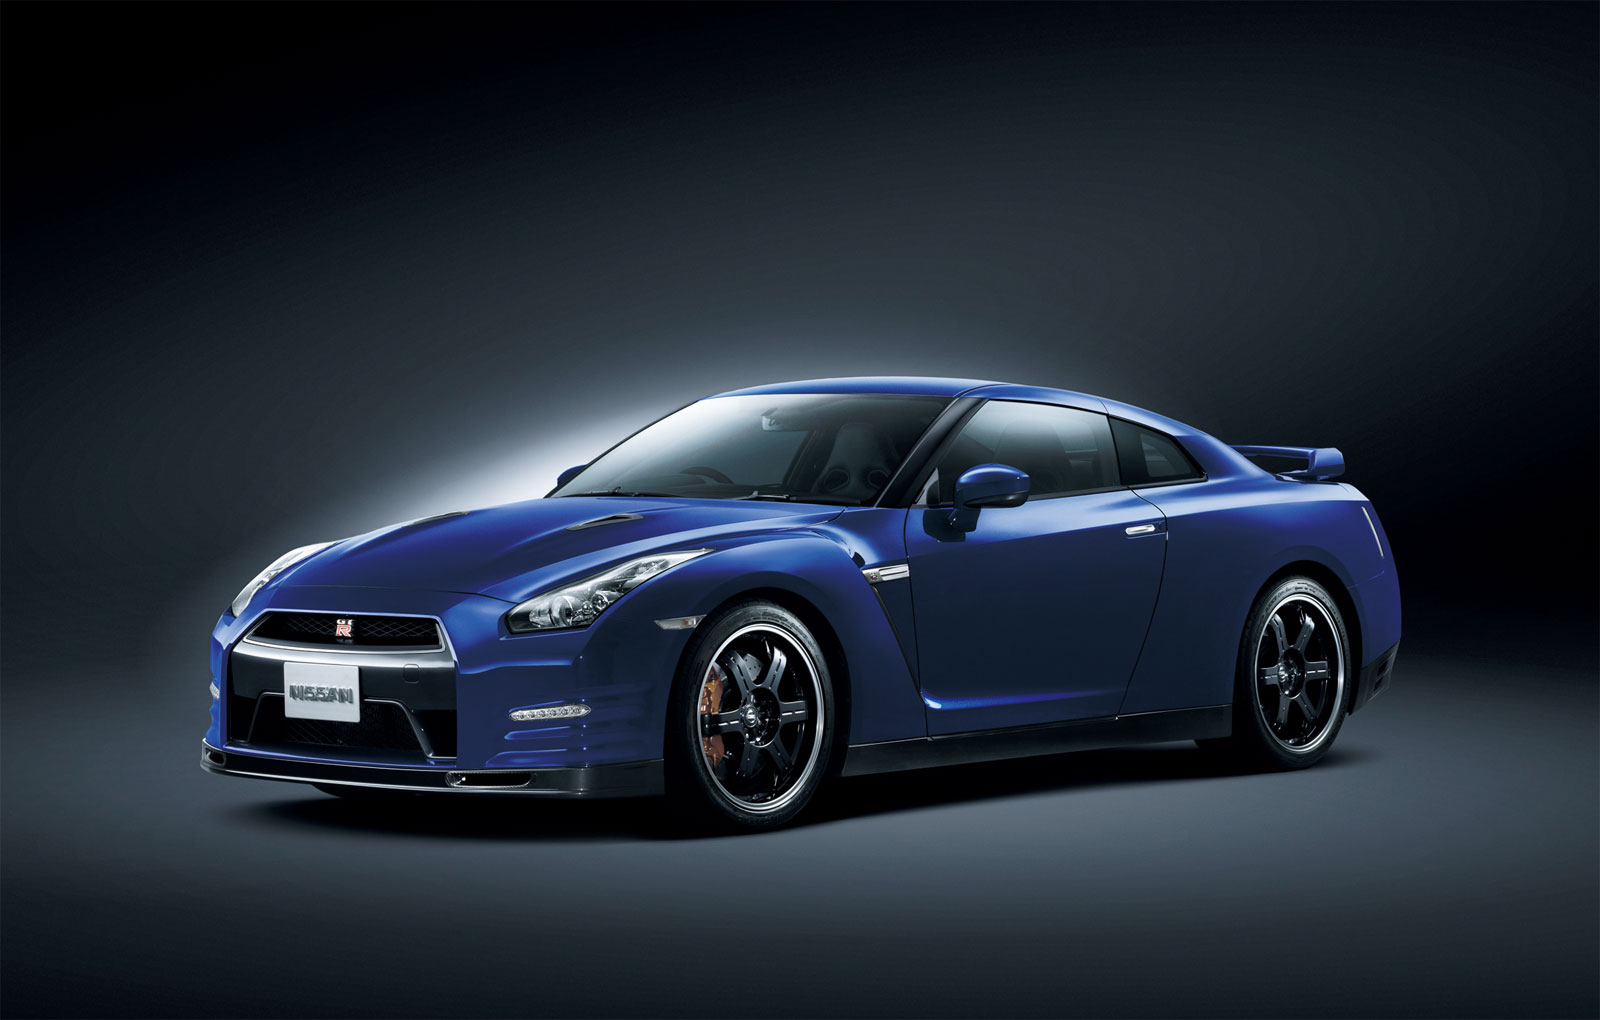 2013 nissan gt r cars sketches. Black Bedroom Furniture Sets. Home Design Ideas